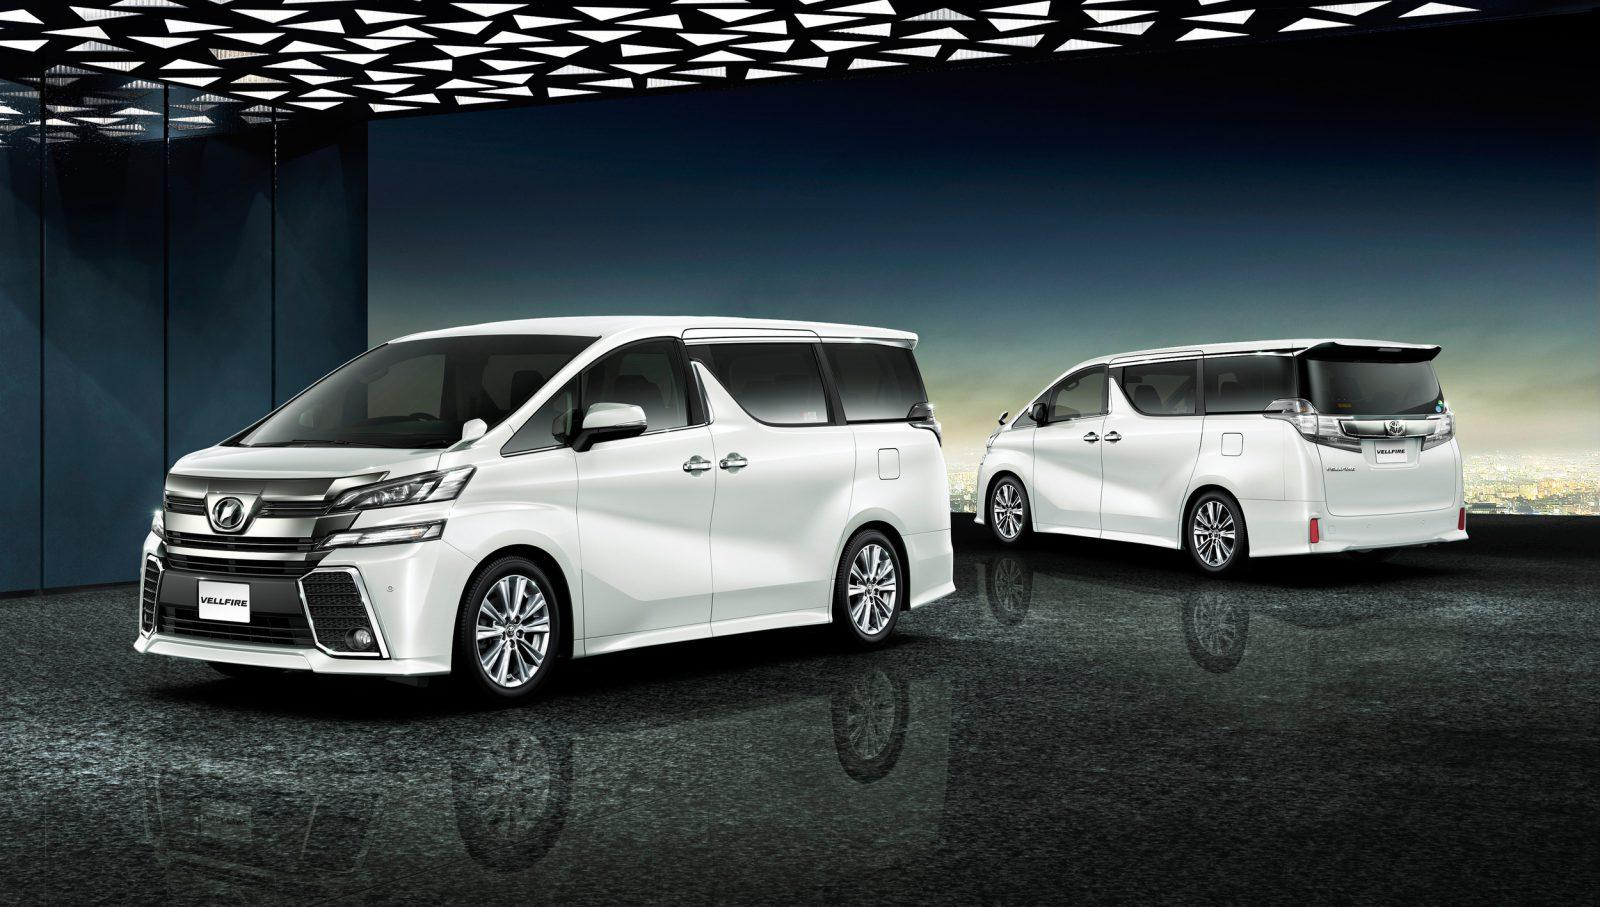 all new alphard vs vellfire kijang innova 2.4 a/t diesel nissan elgrand toyota comparison car from japan